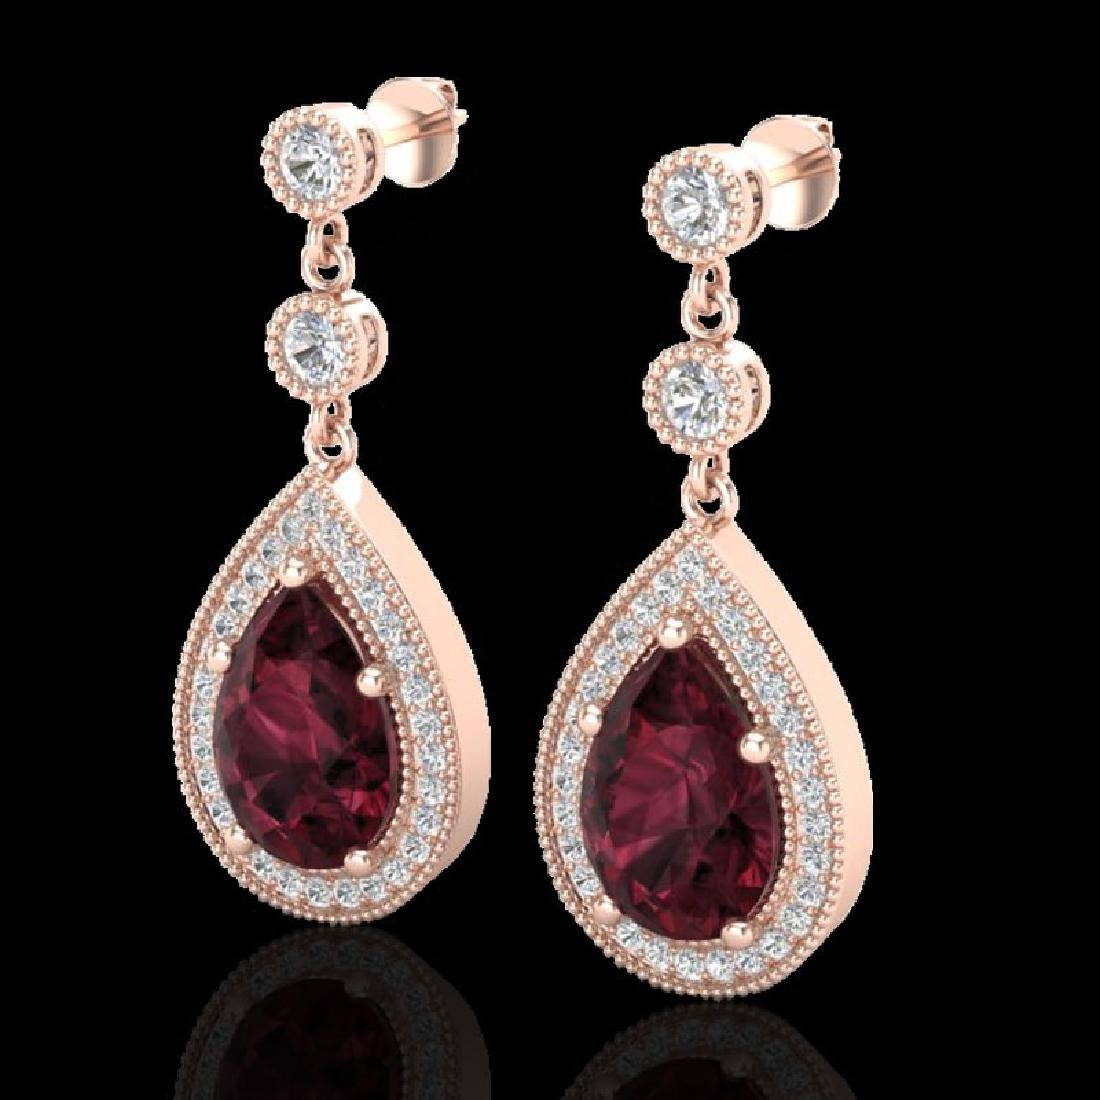 4.50 CTW Garnet & Micro Pave VS/SI Diamond Earrings